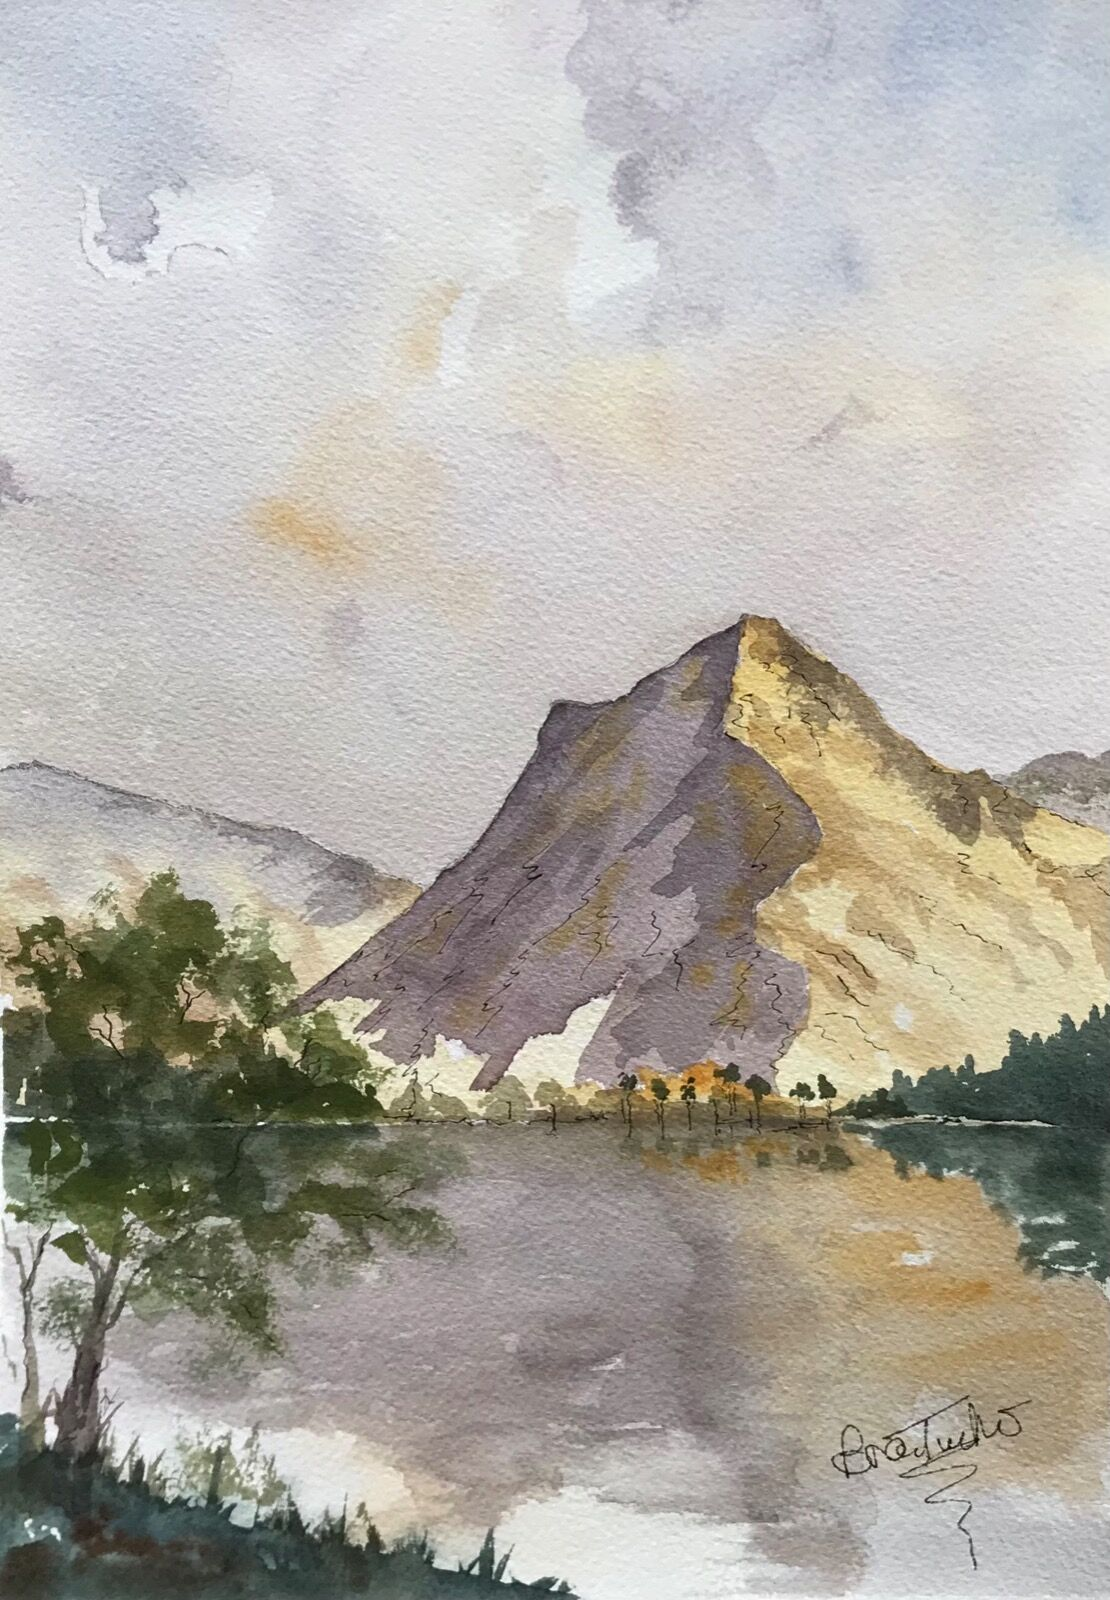 Across Buttermere in the Lake District